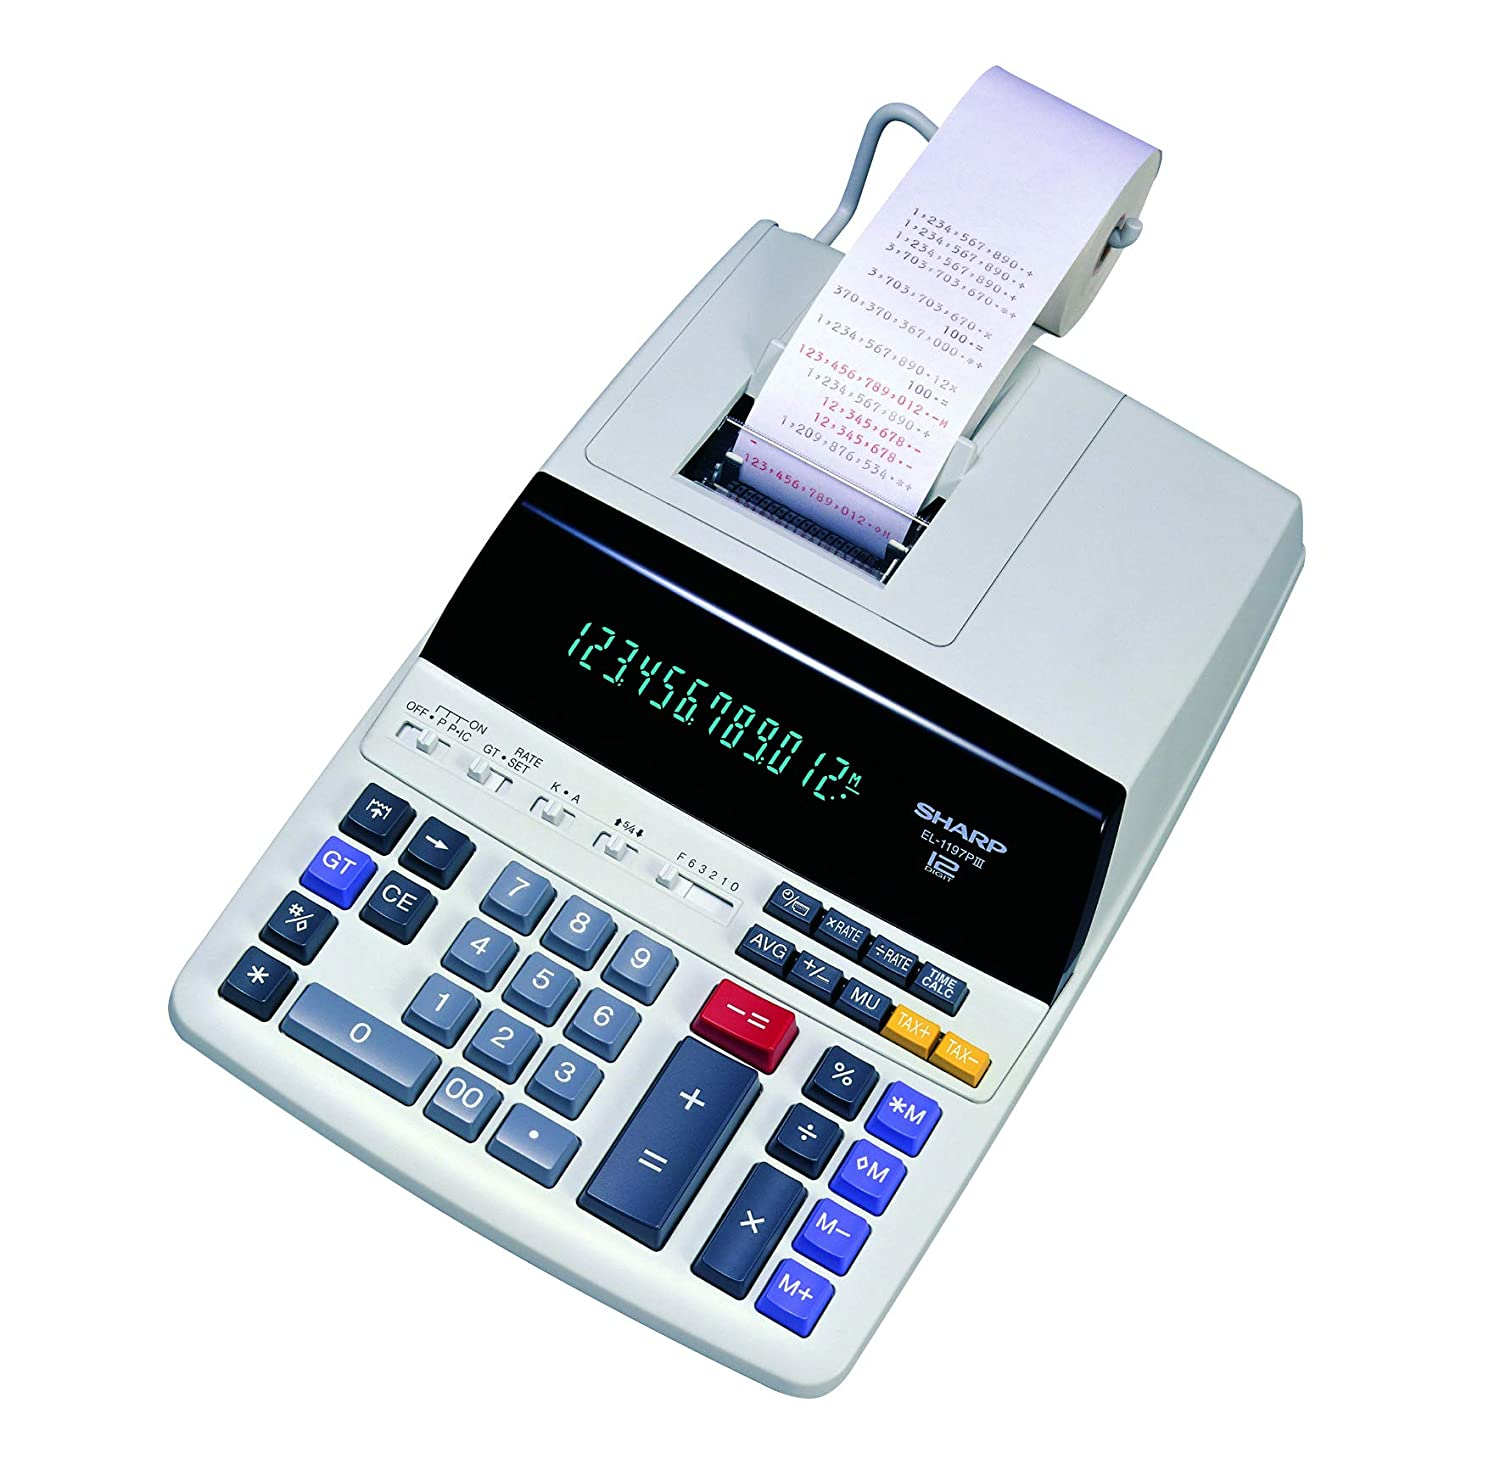 B00005BIEF Sharp EL-1197PIII Heavy Duty Color Printing Calculator with Clock and Calendar 71hKgJnIRsL._SL1500_